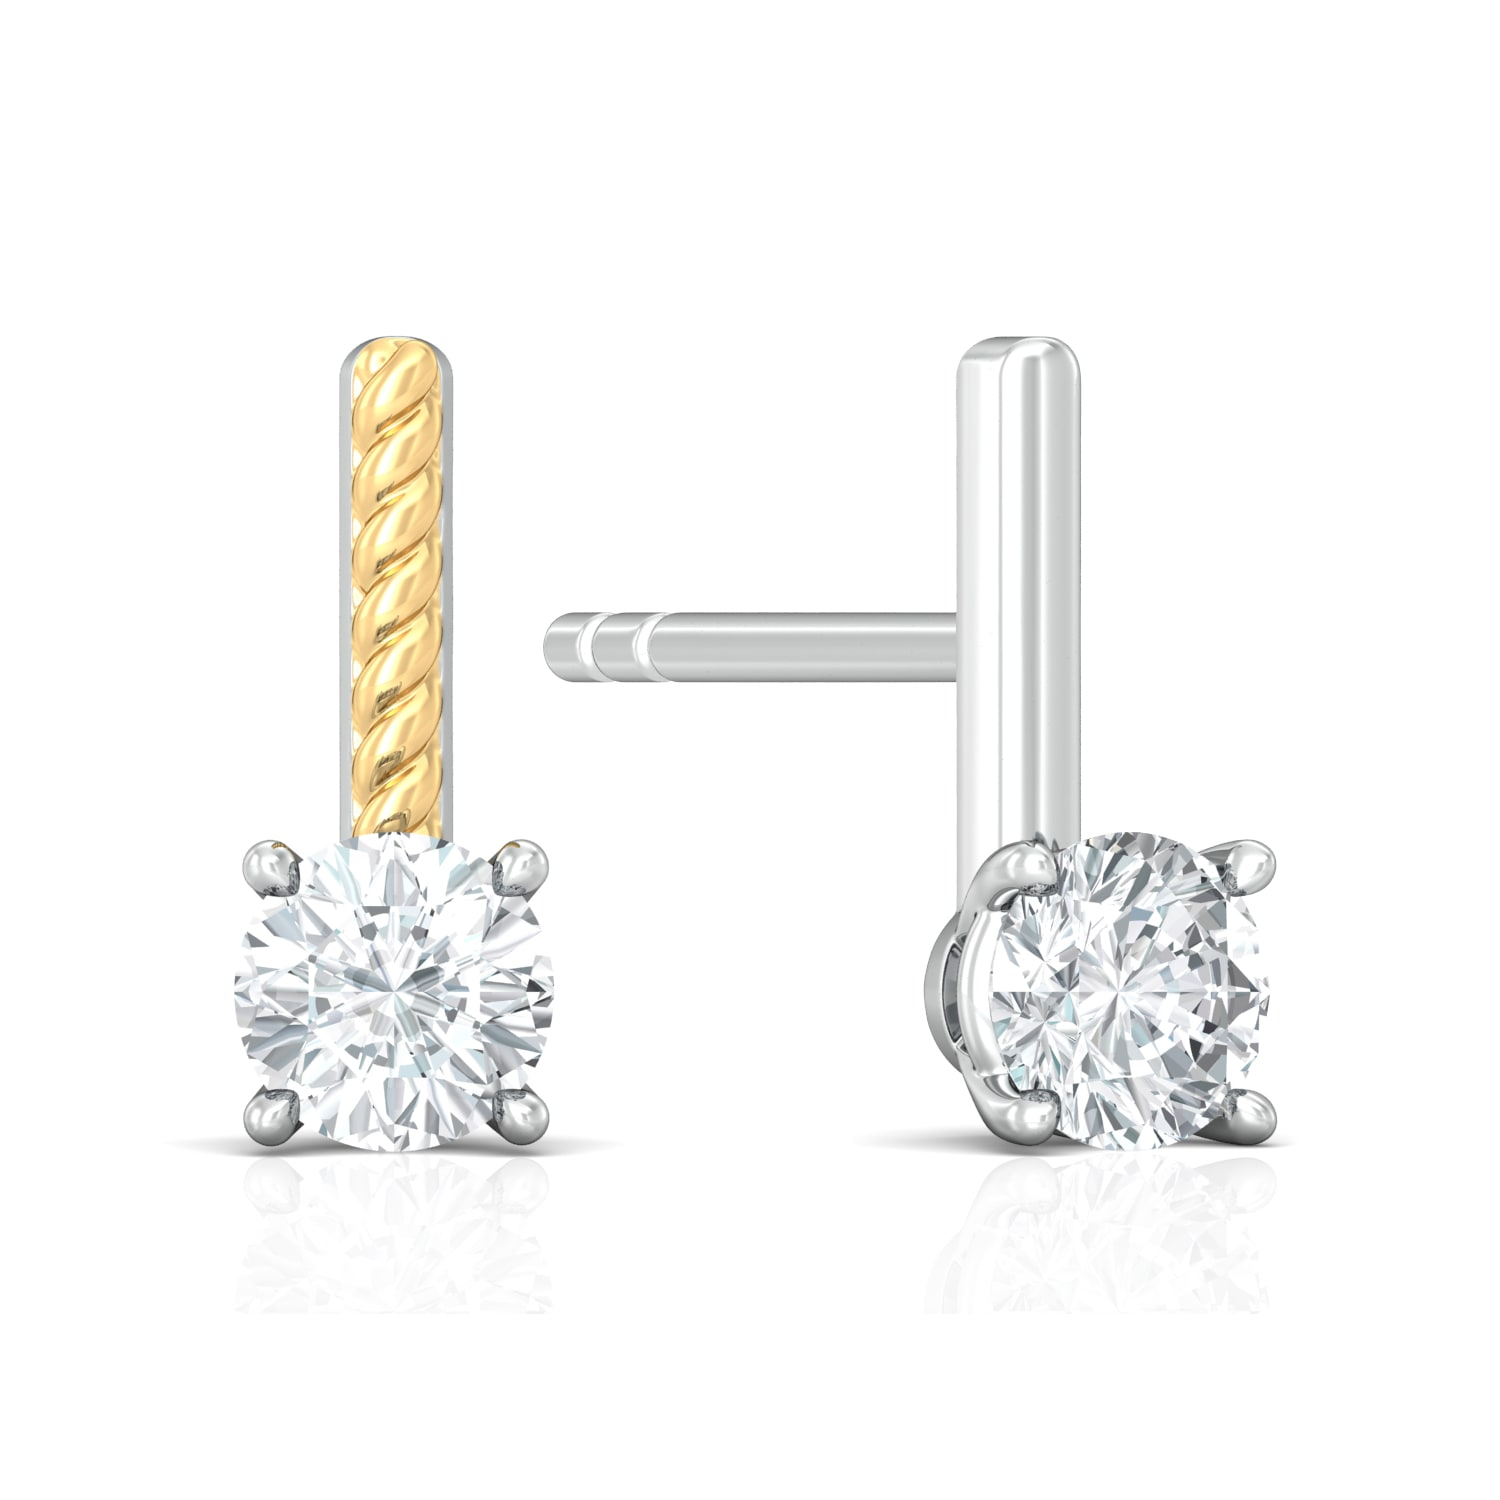 Solitaire Extraordinaire Diamond Earrings